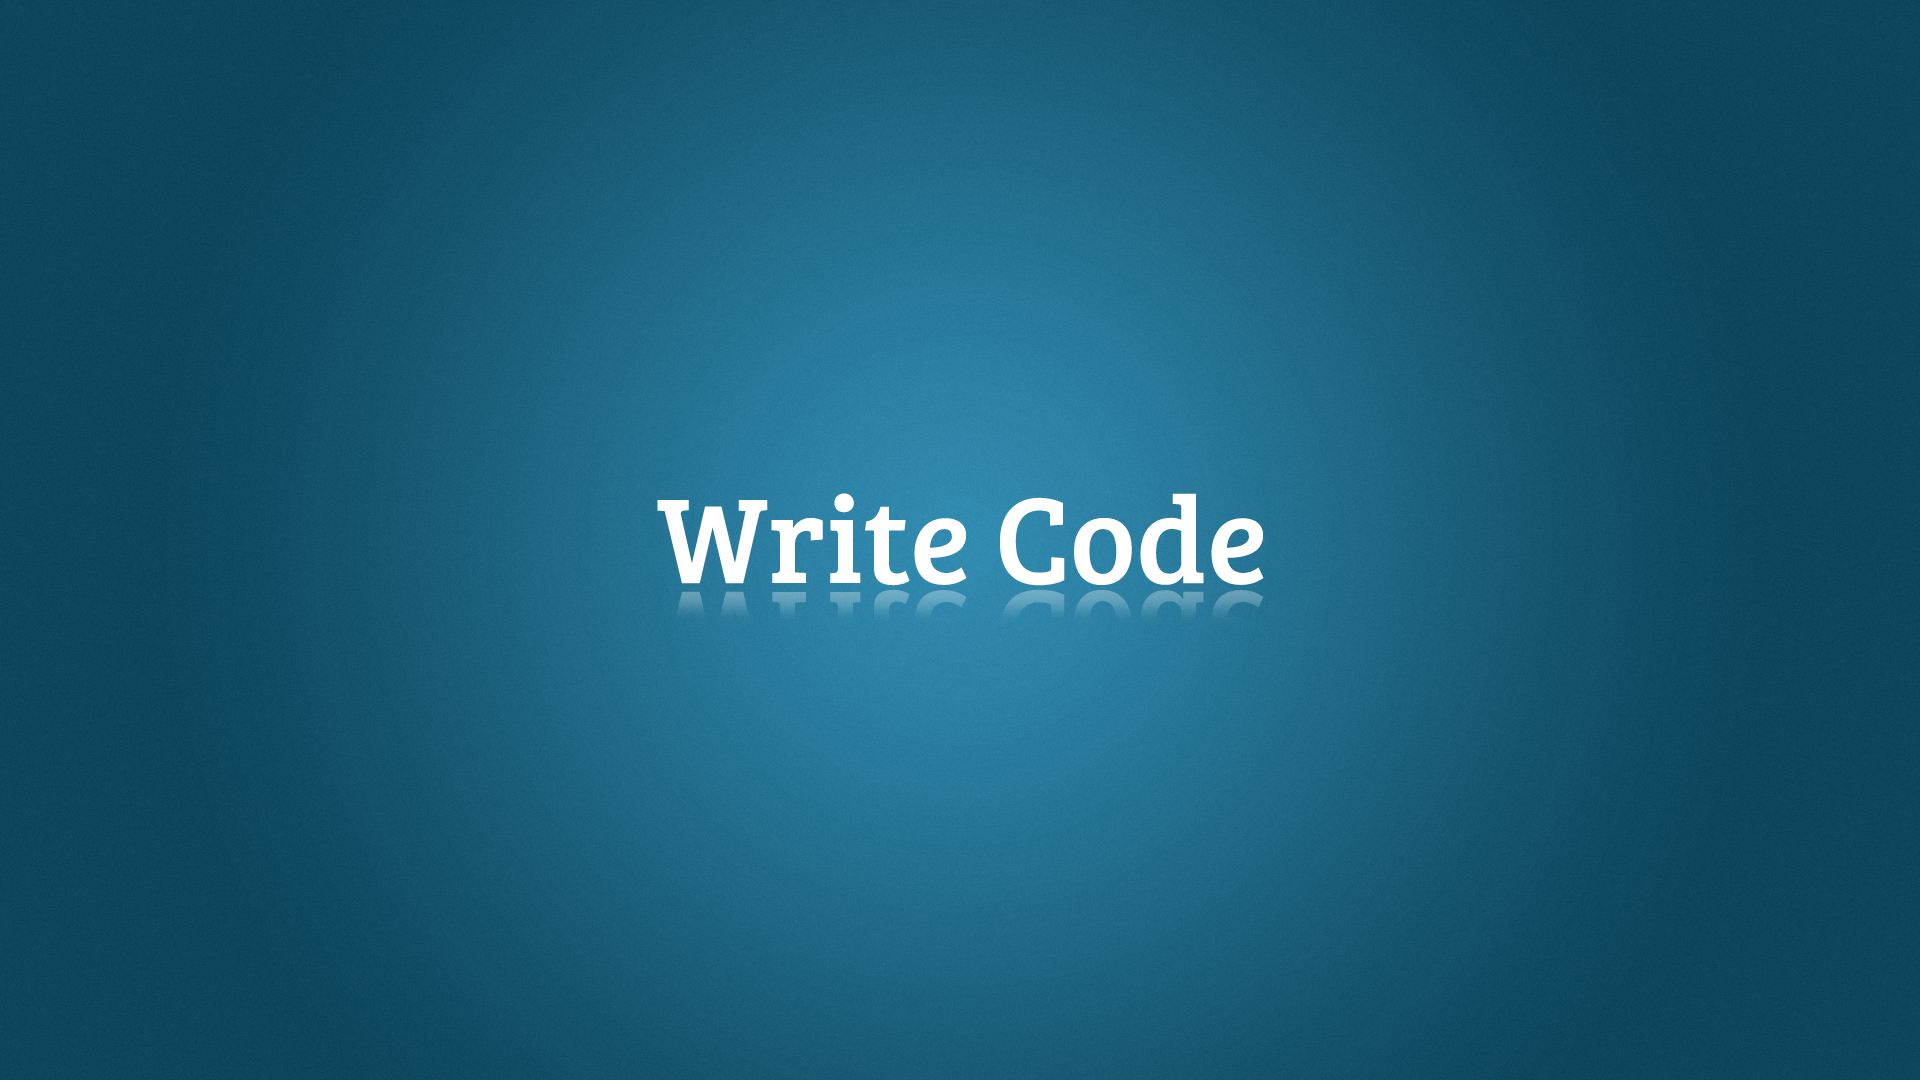 37 Programmer Code Wallpaper Backgrounds Download 1920x1080